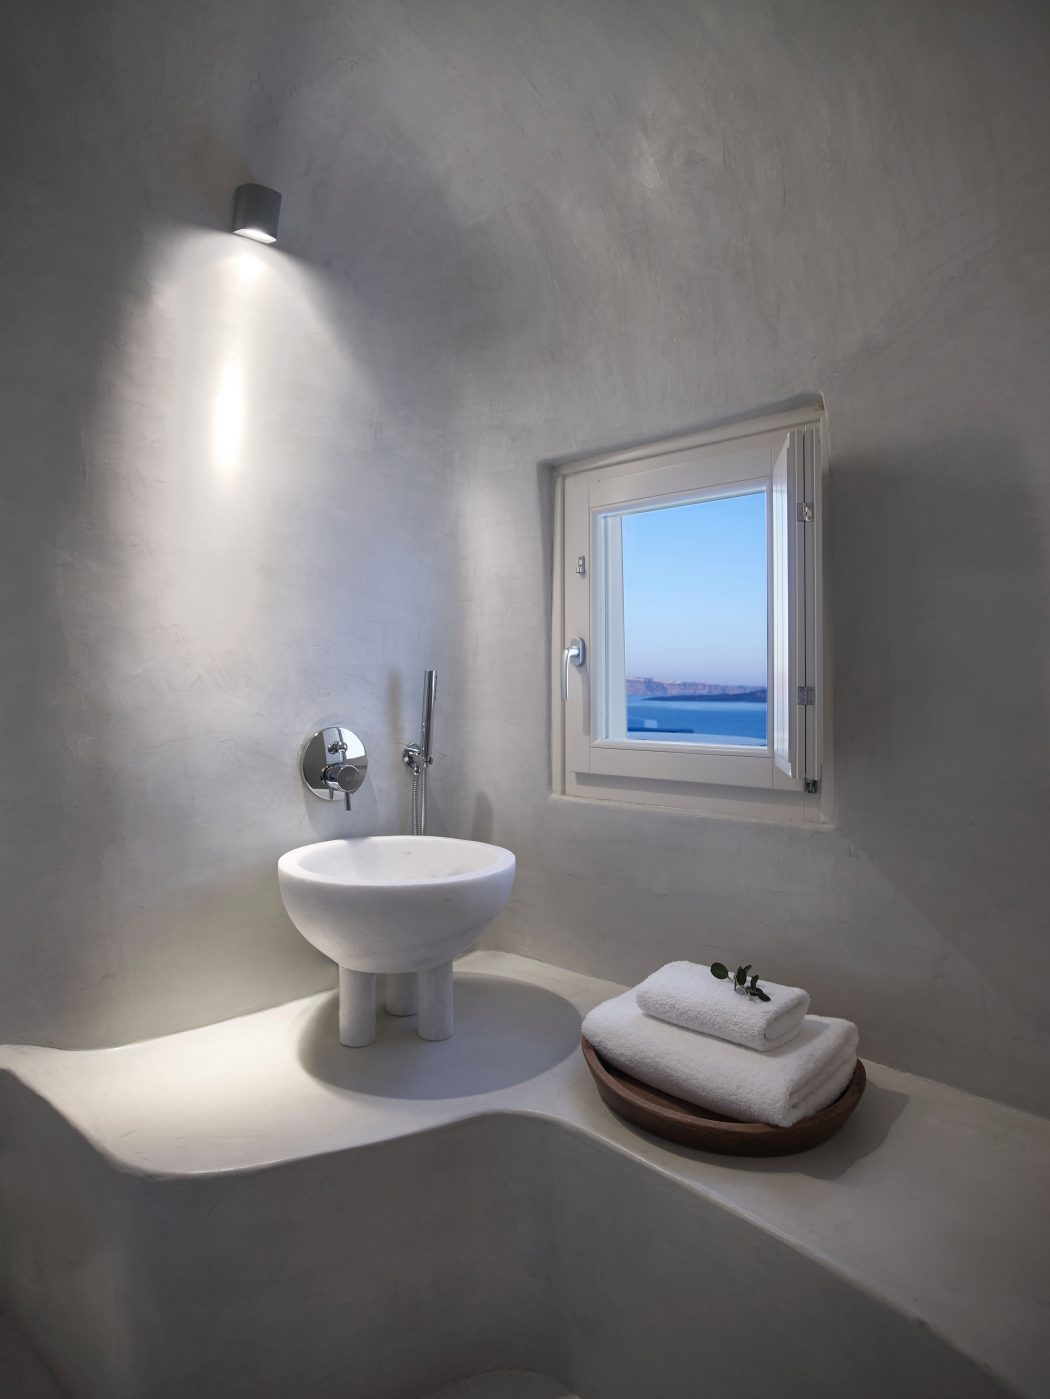 The master bathroom features a whumsy free standing sink on small legs and a small window with a view